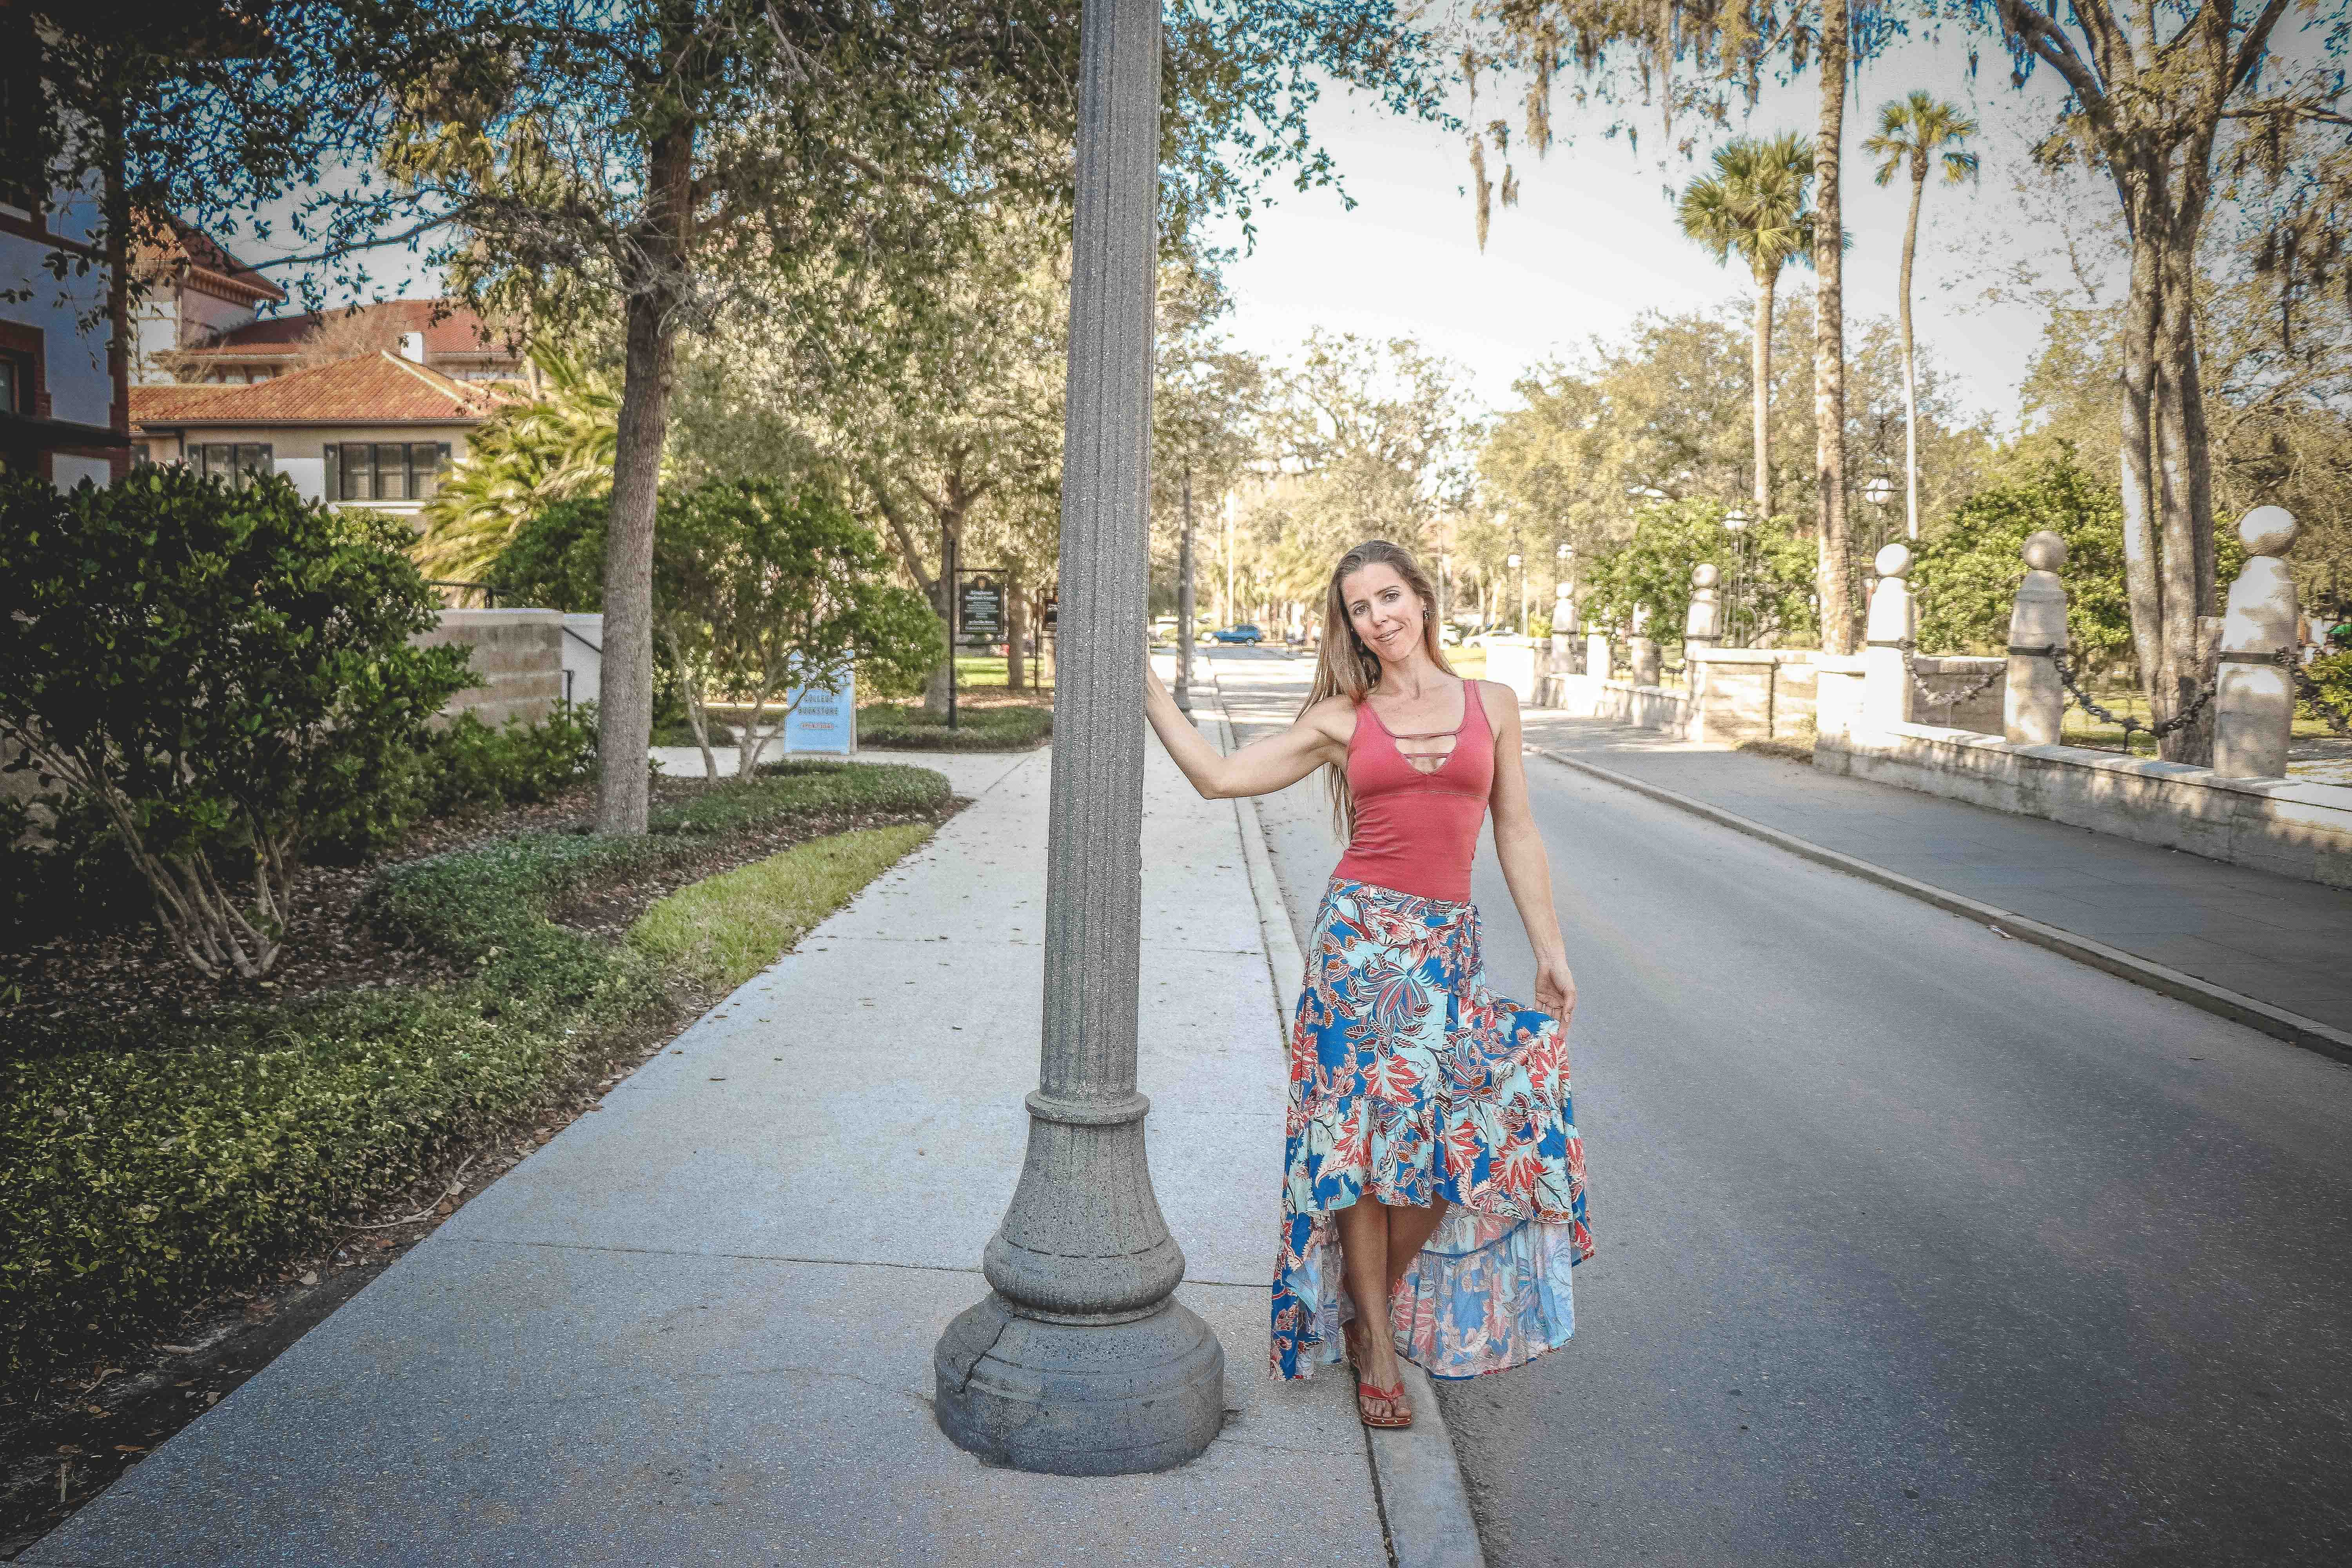 Woman Wearing Red and Blue Floral Tank Dress Beside Concrete Road